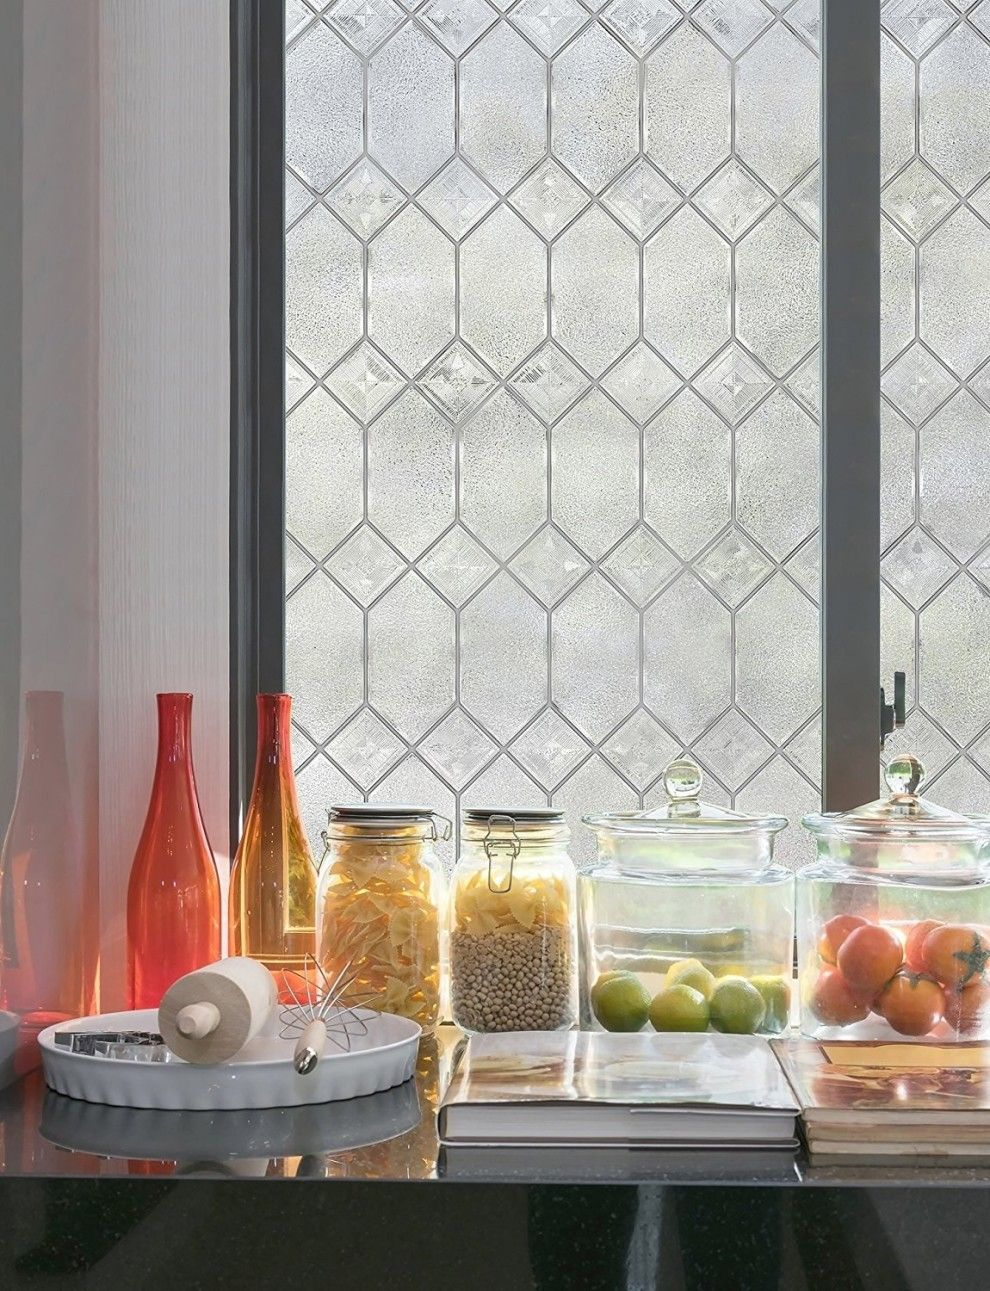 27 Cheap Ways To Upgrade Your Home | Banks, Window and Glass